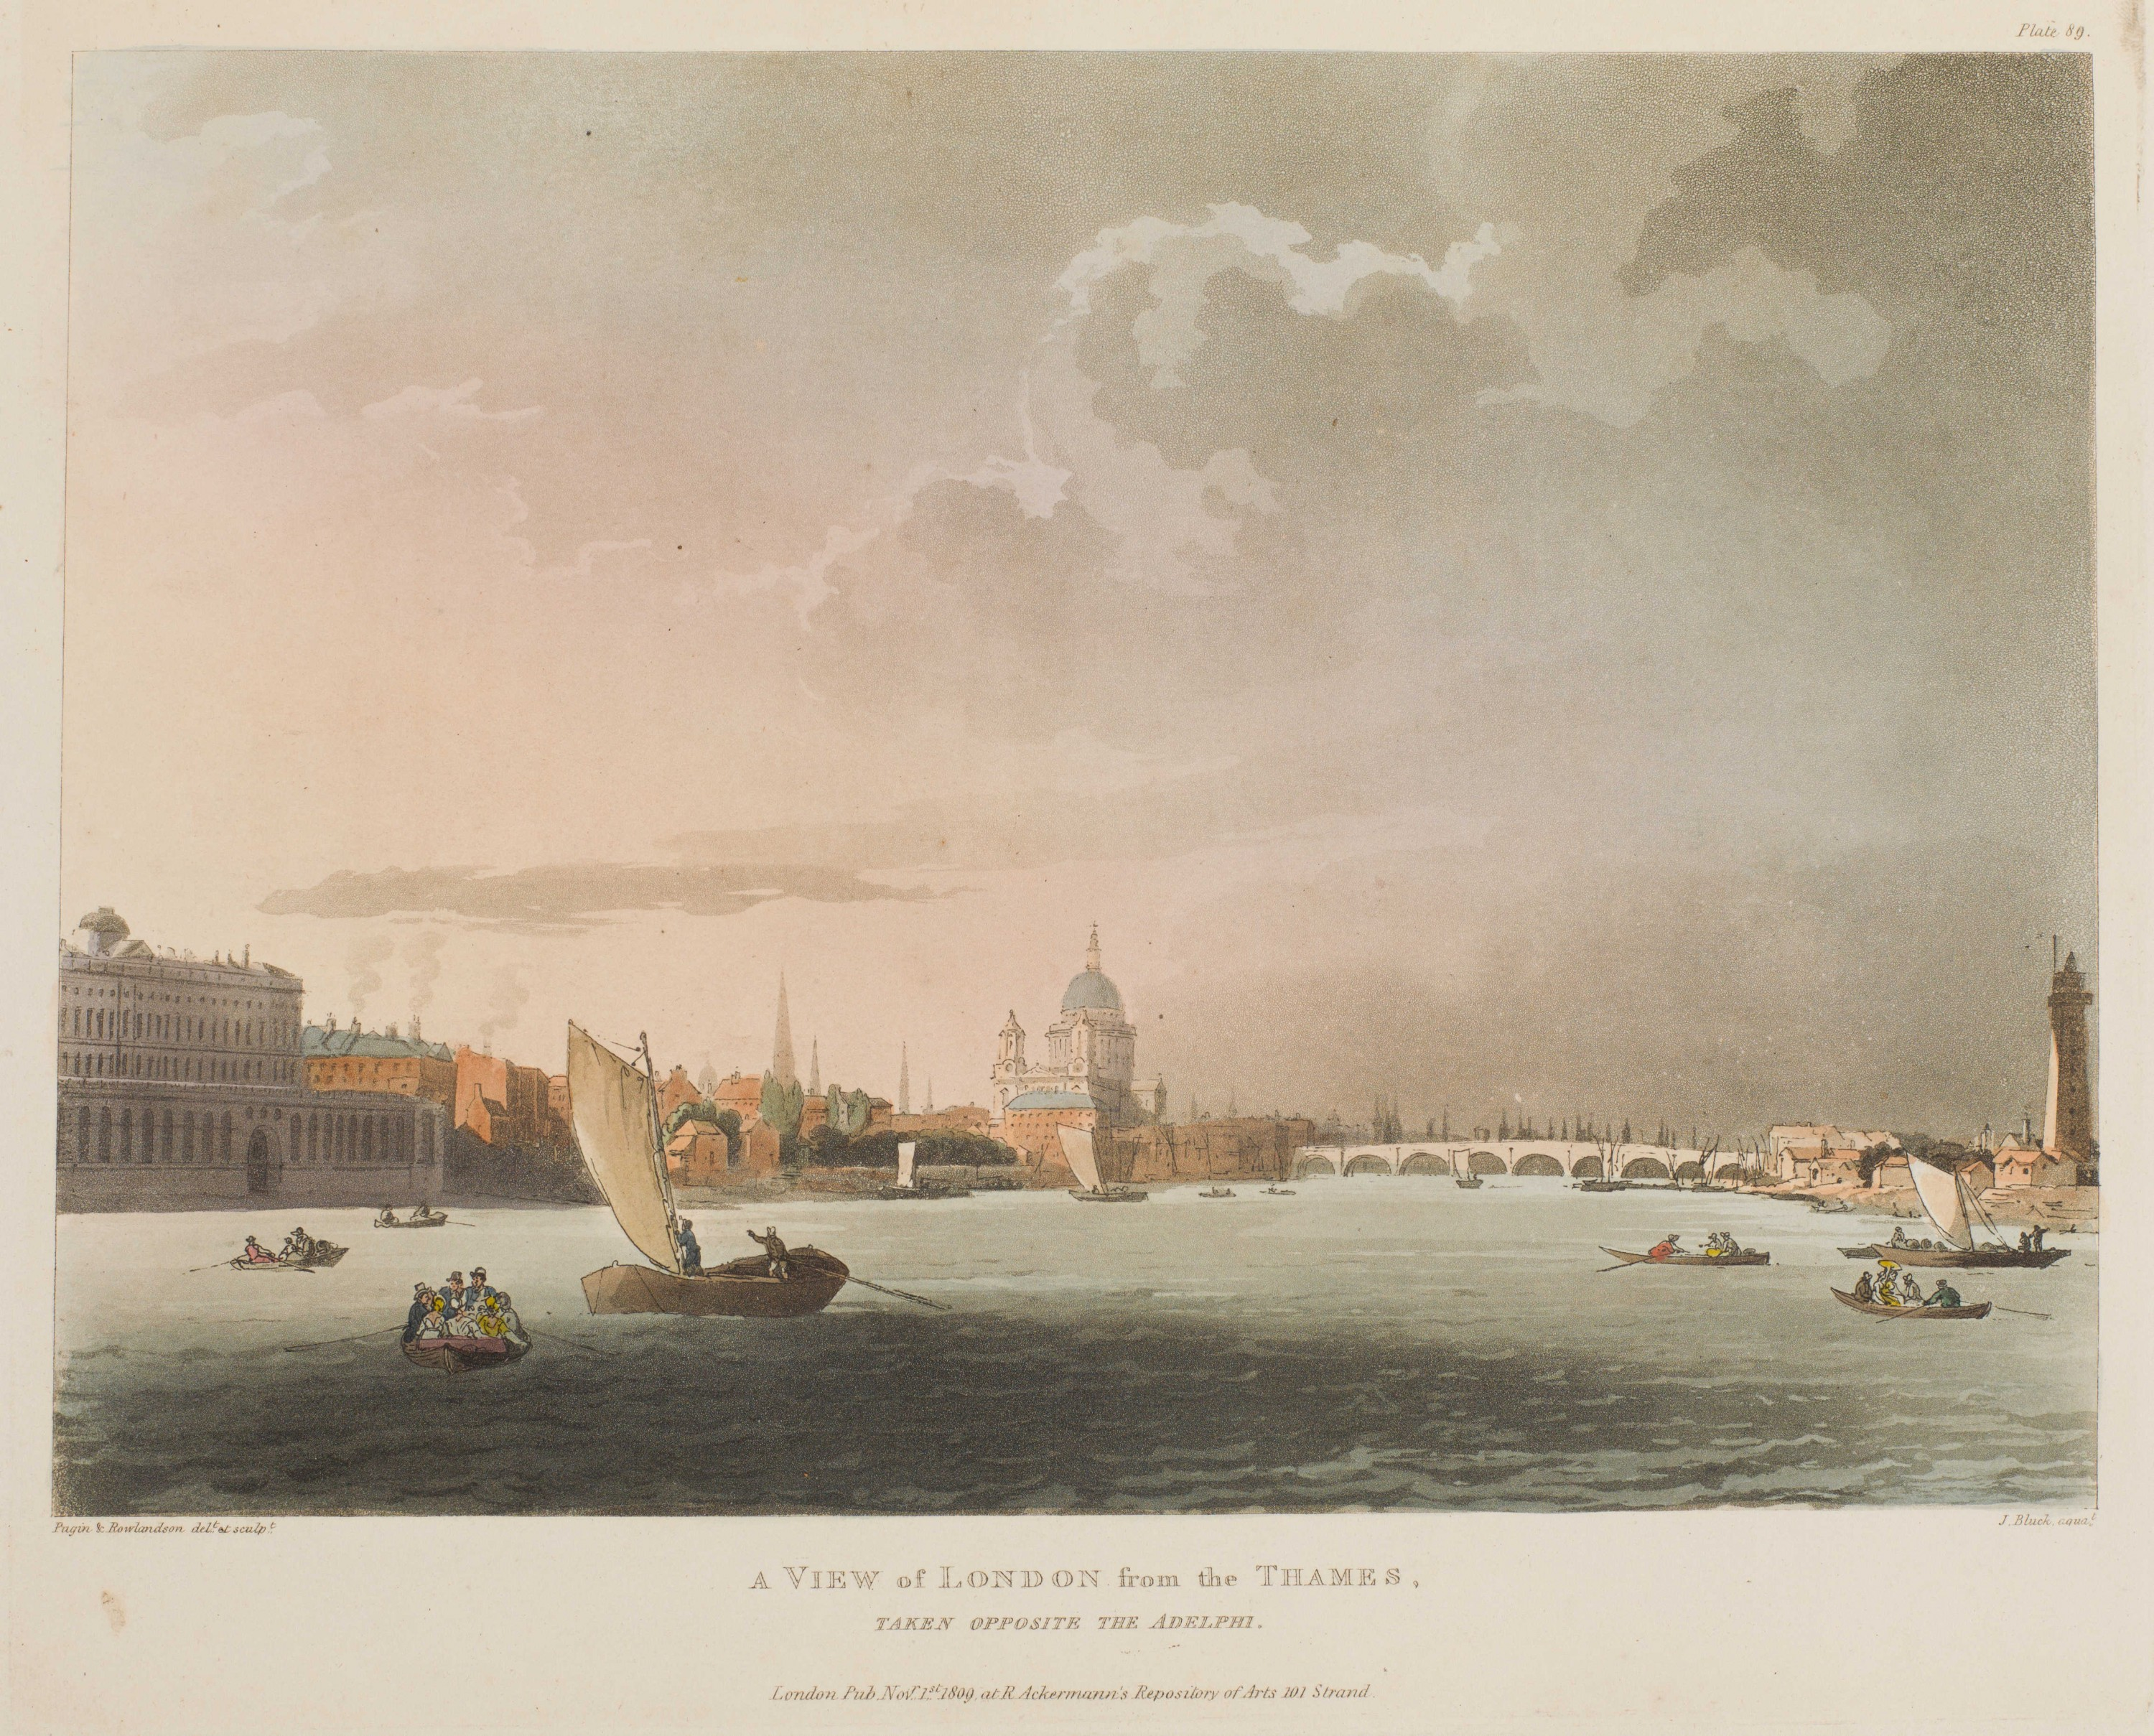 104 - A View of London from the Thames, taken opposite the Adelphi